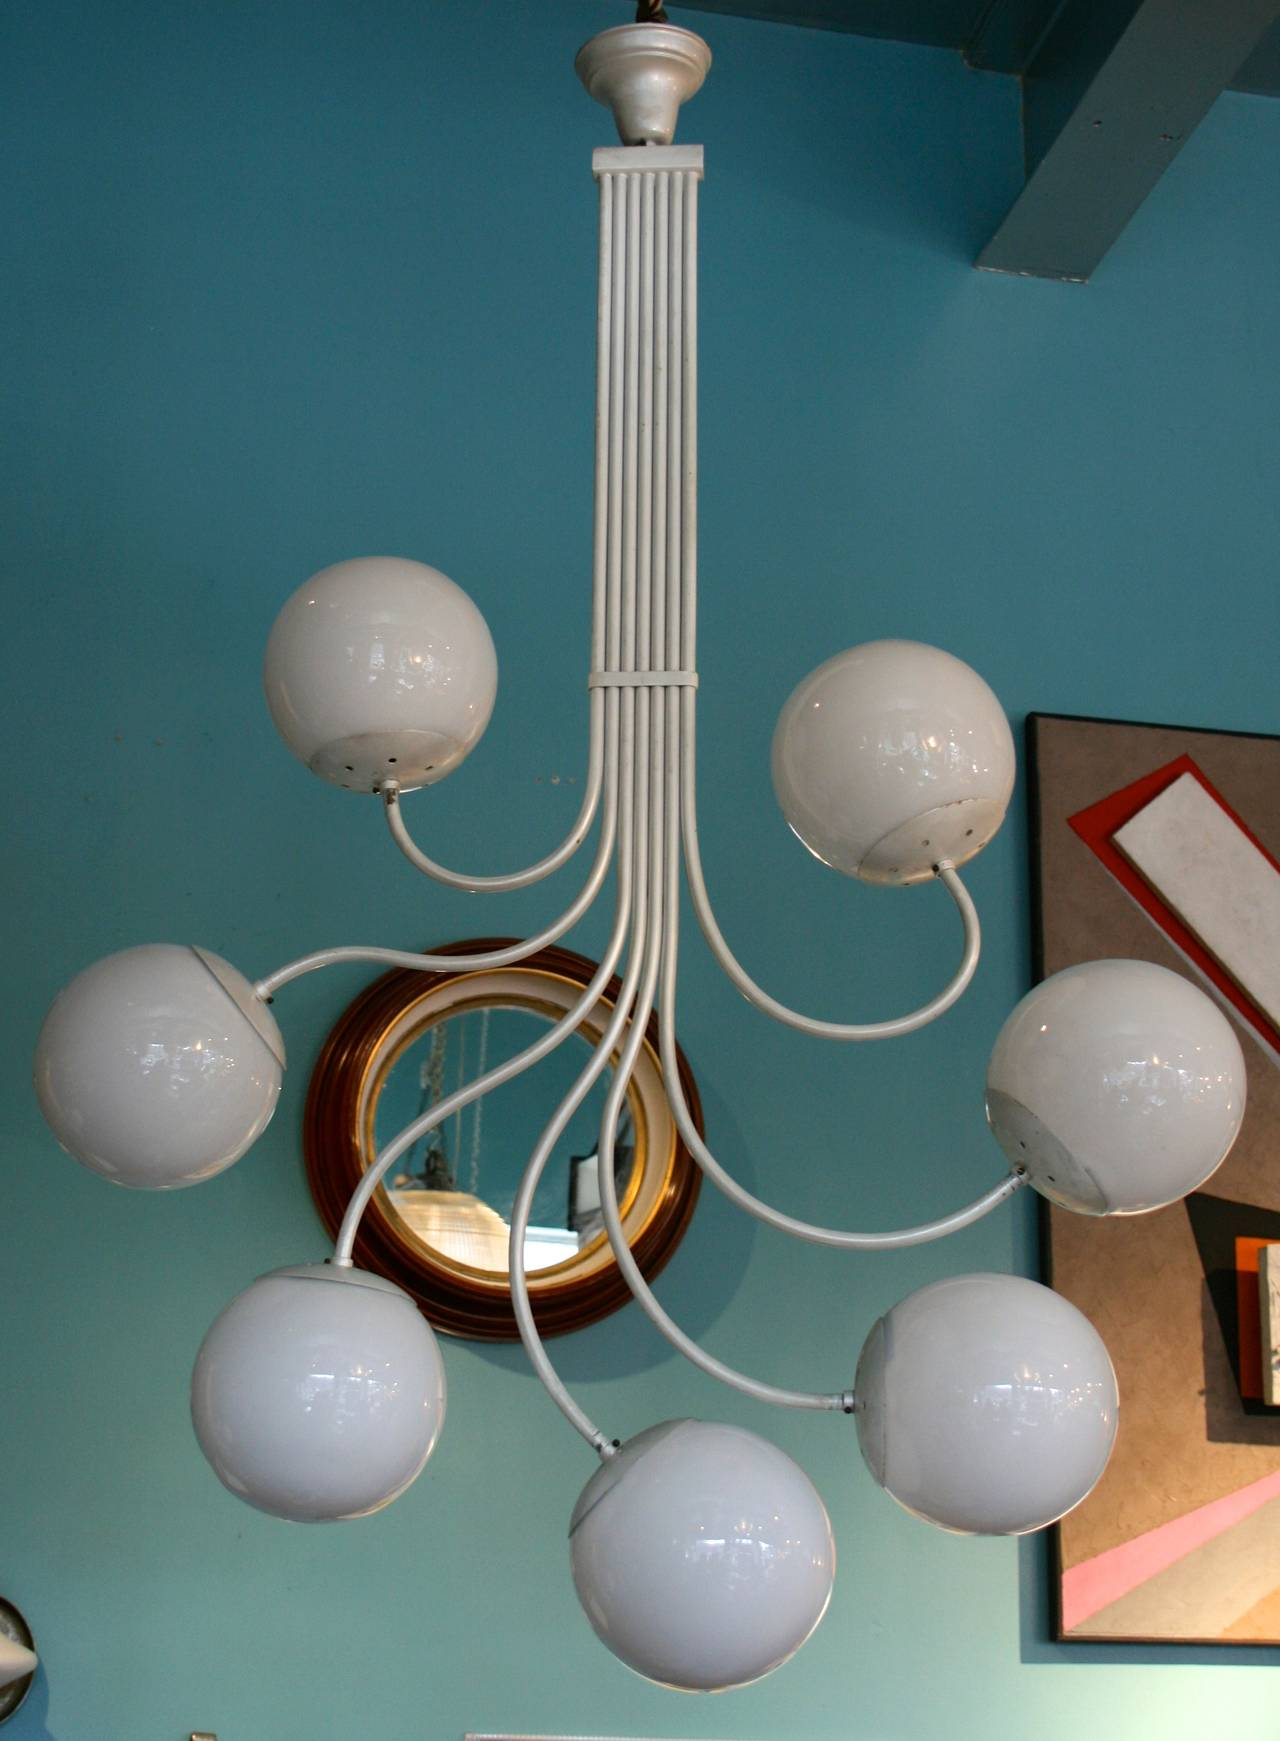 Unusual Italian seven ball light fixture, painted metal and 7 white glass spheres.